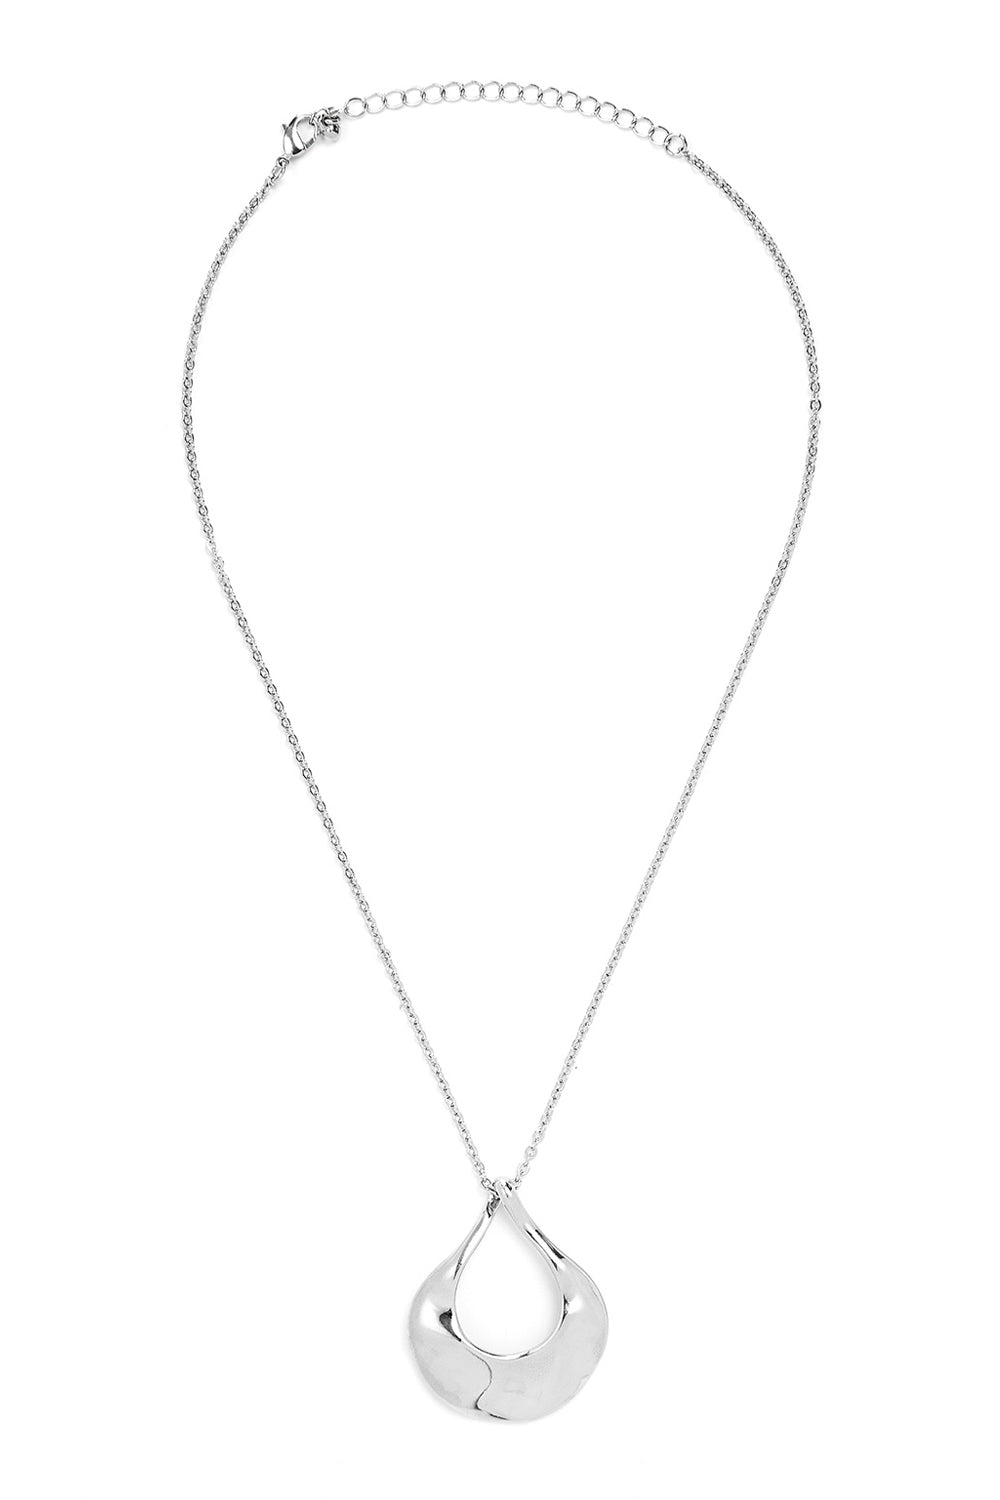 Type 4 Silver Rain Necklace